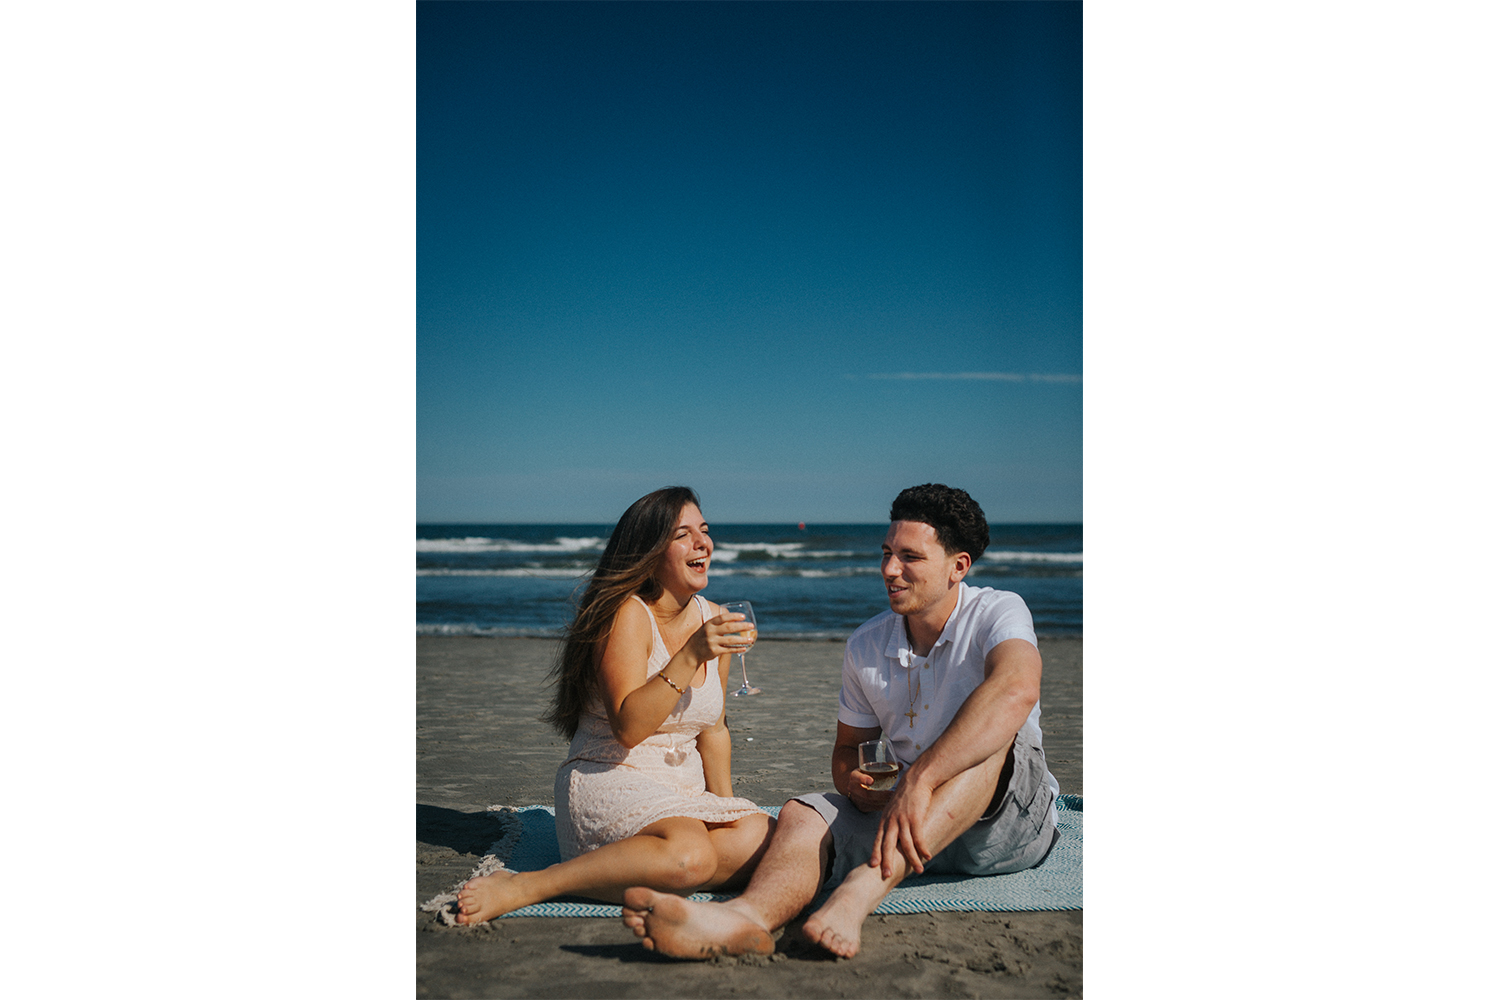 New_Jersey_Wedding_Photography_Engagement_Session_Beach_Session_Couple_002.jpg